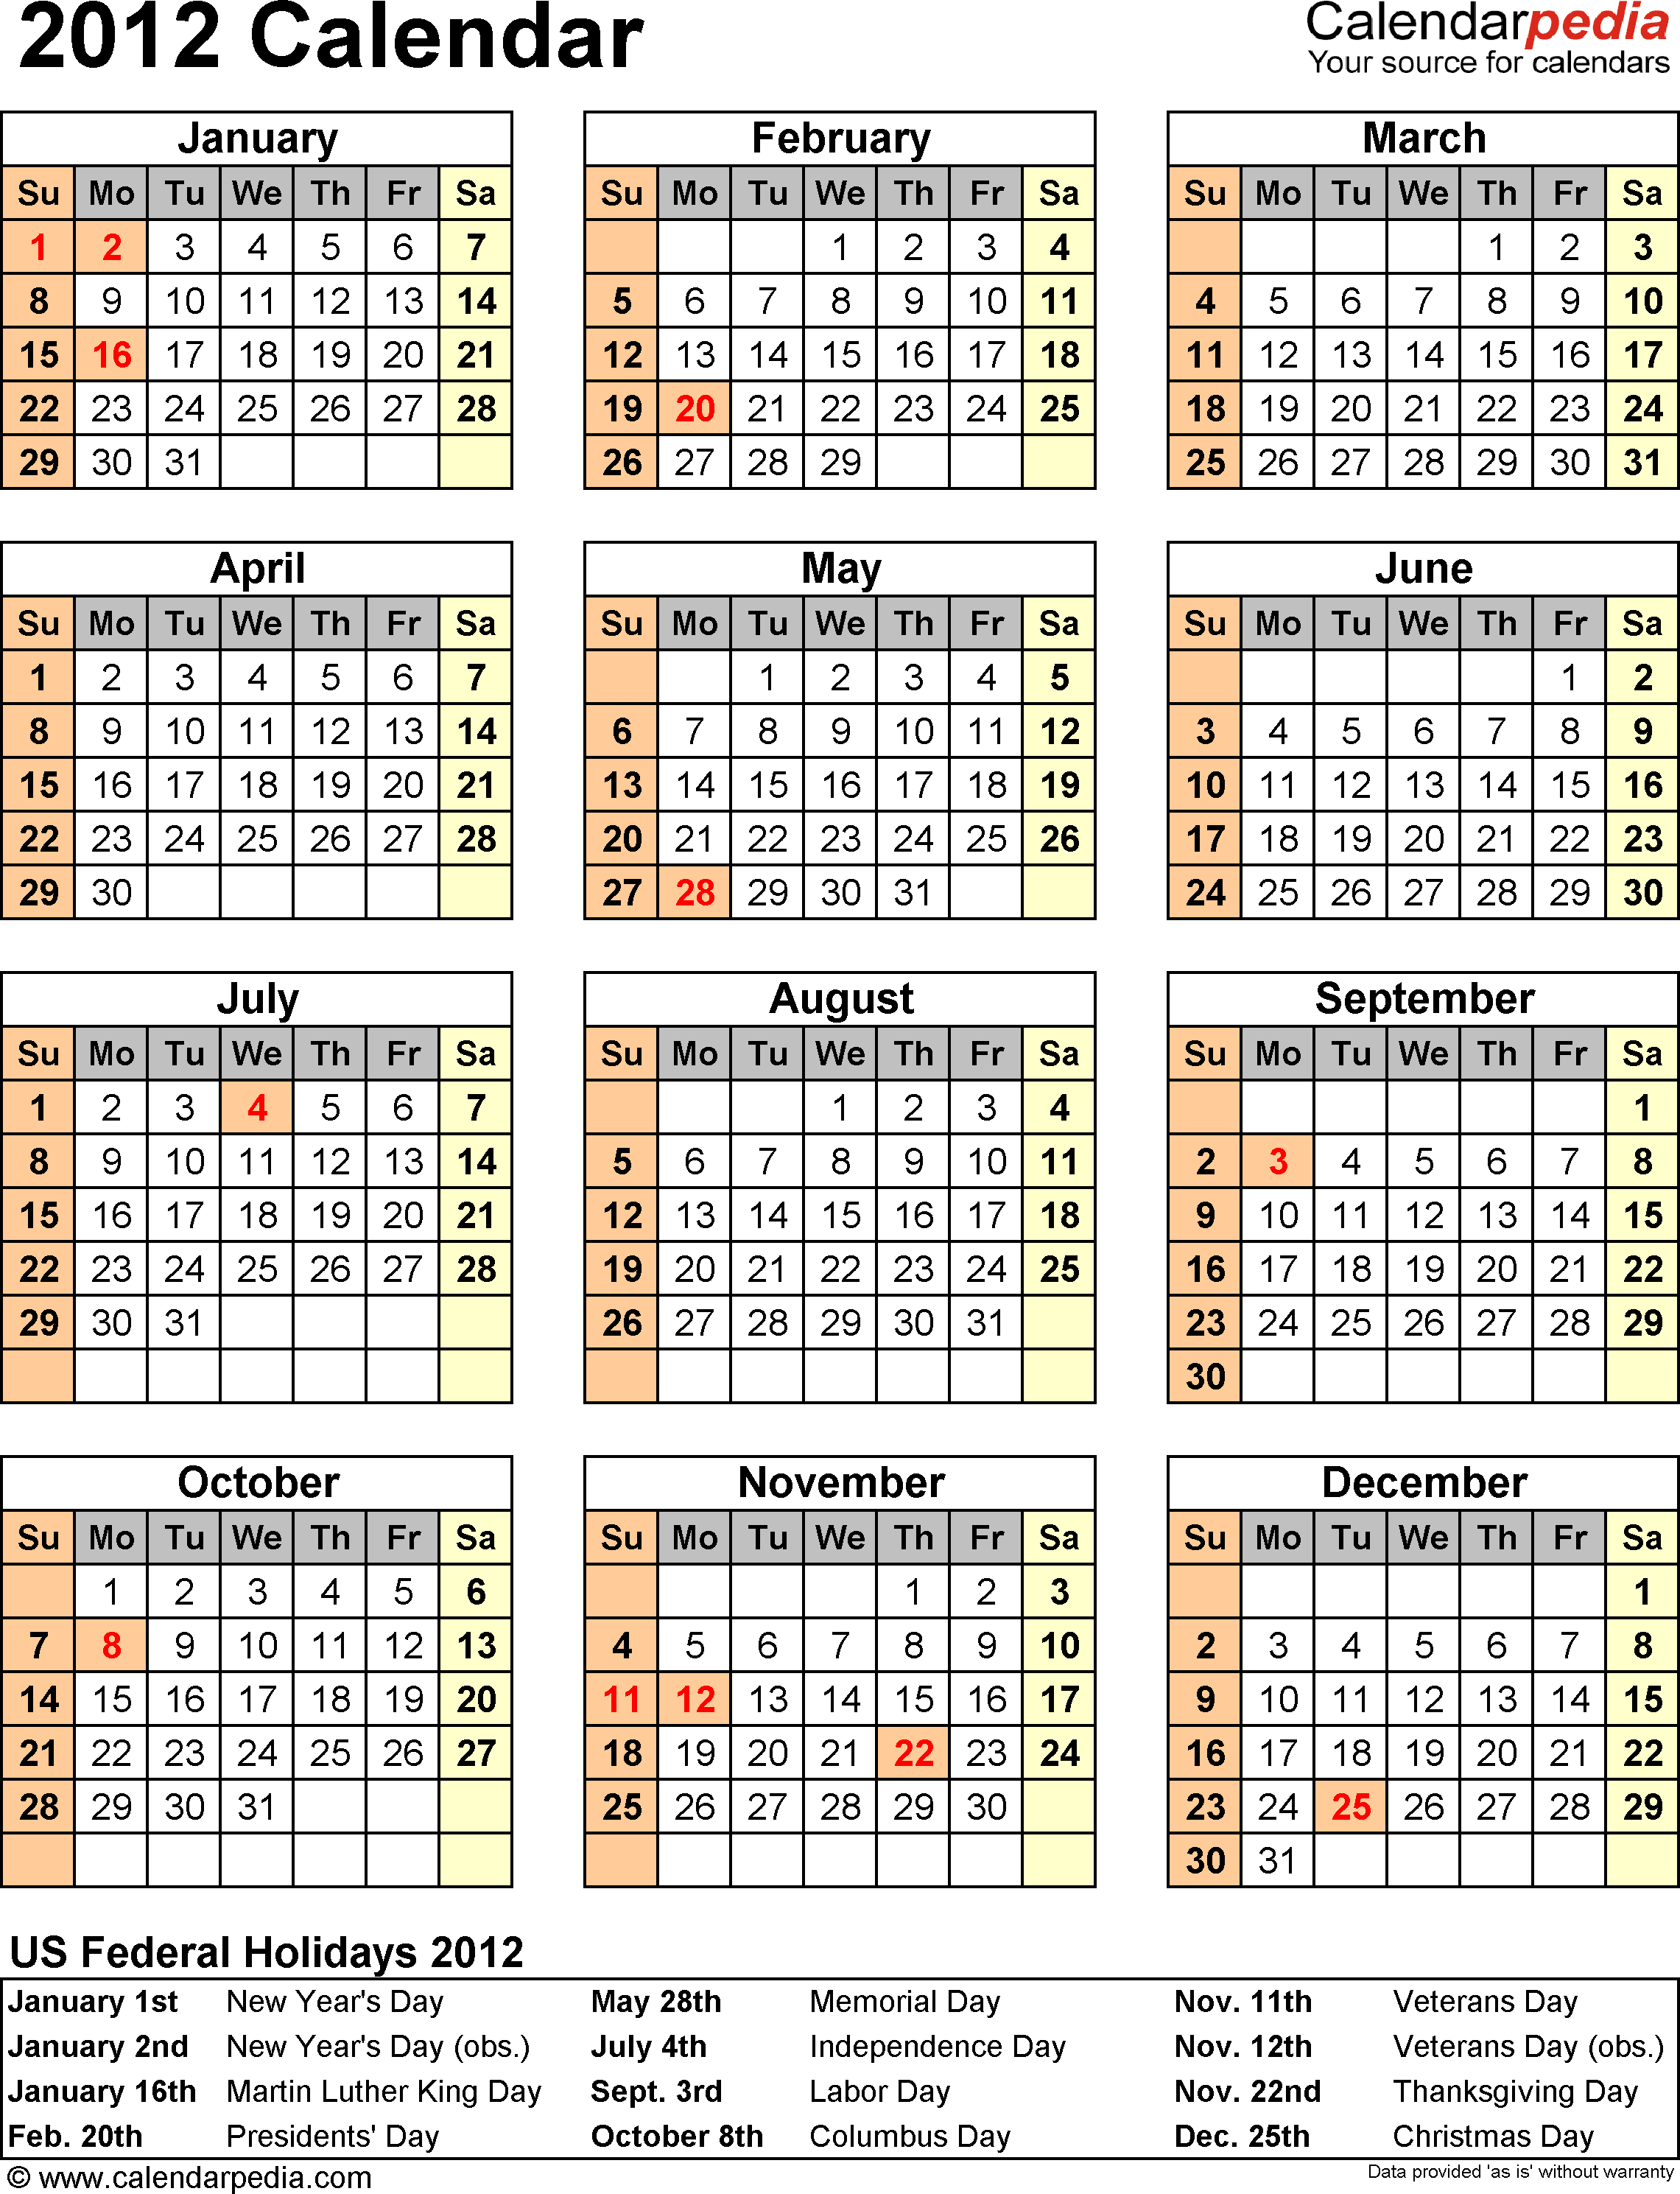 Download Download Word template for 2012 calendar template 10: portrait orientation, 1 page